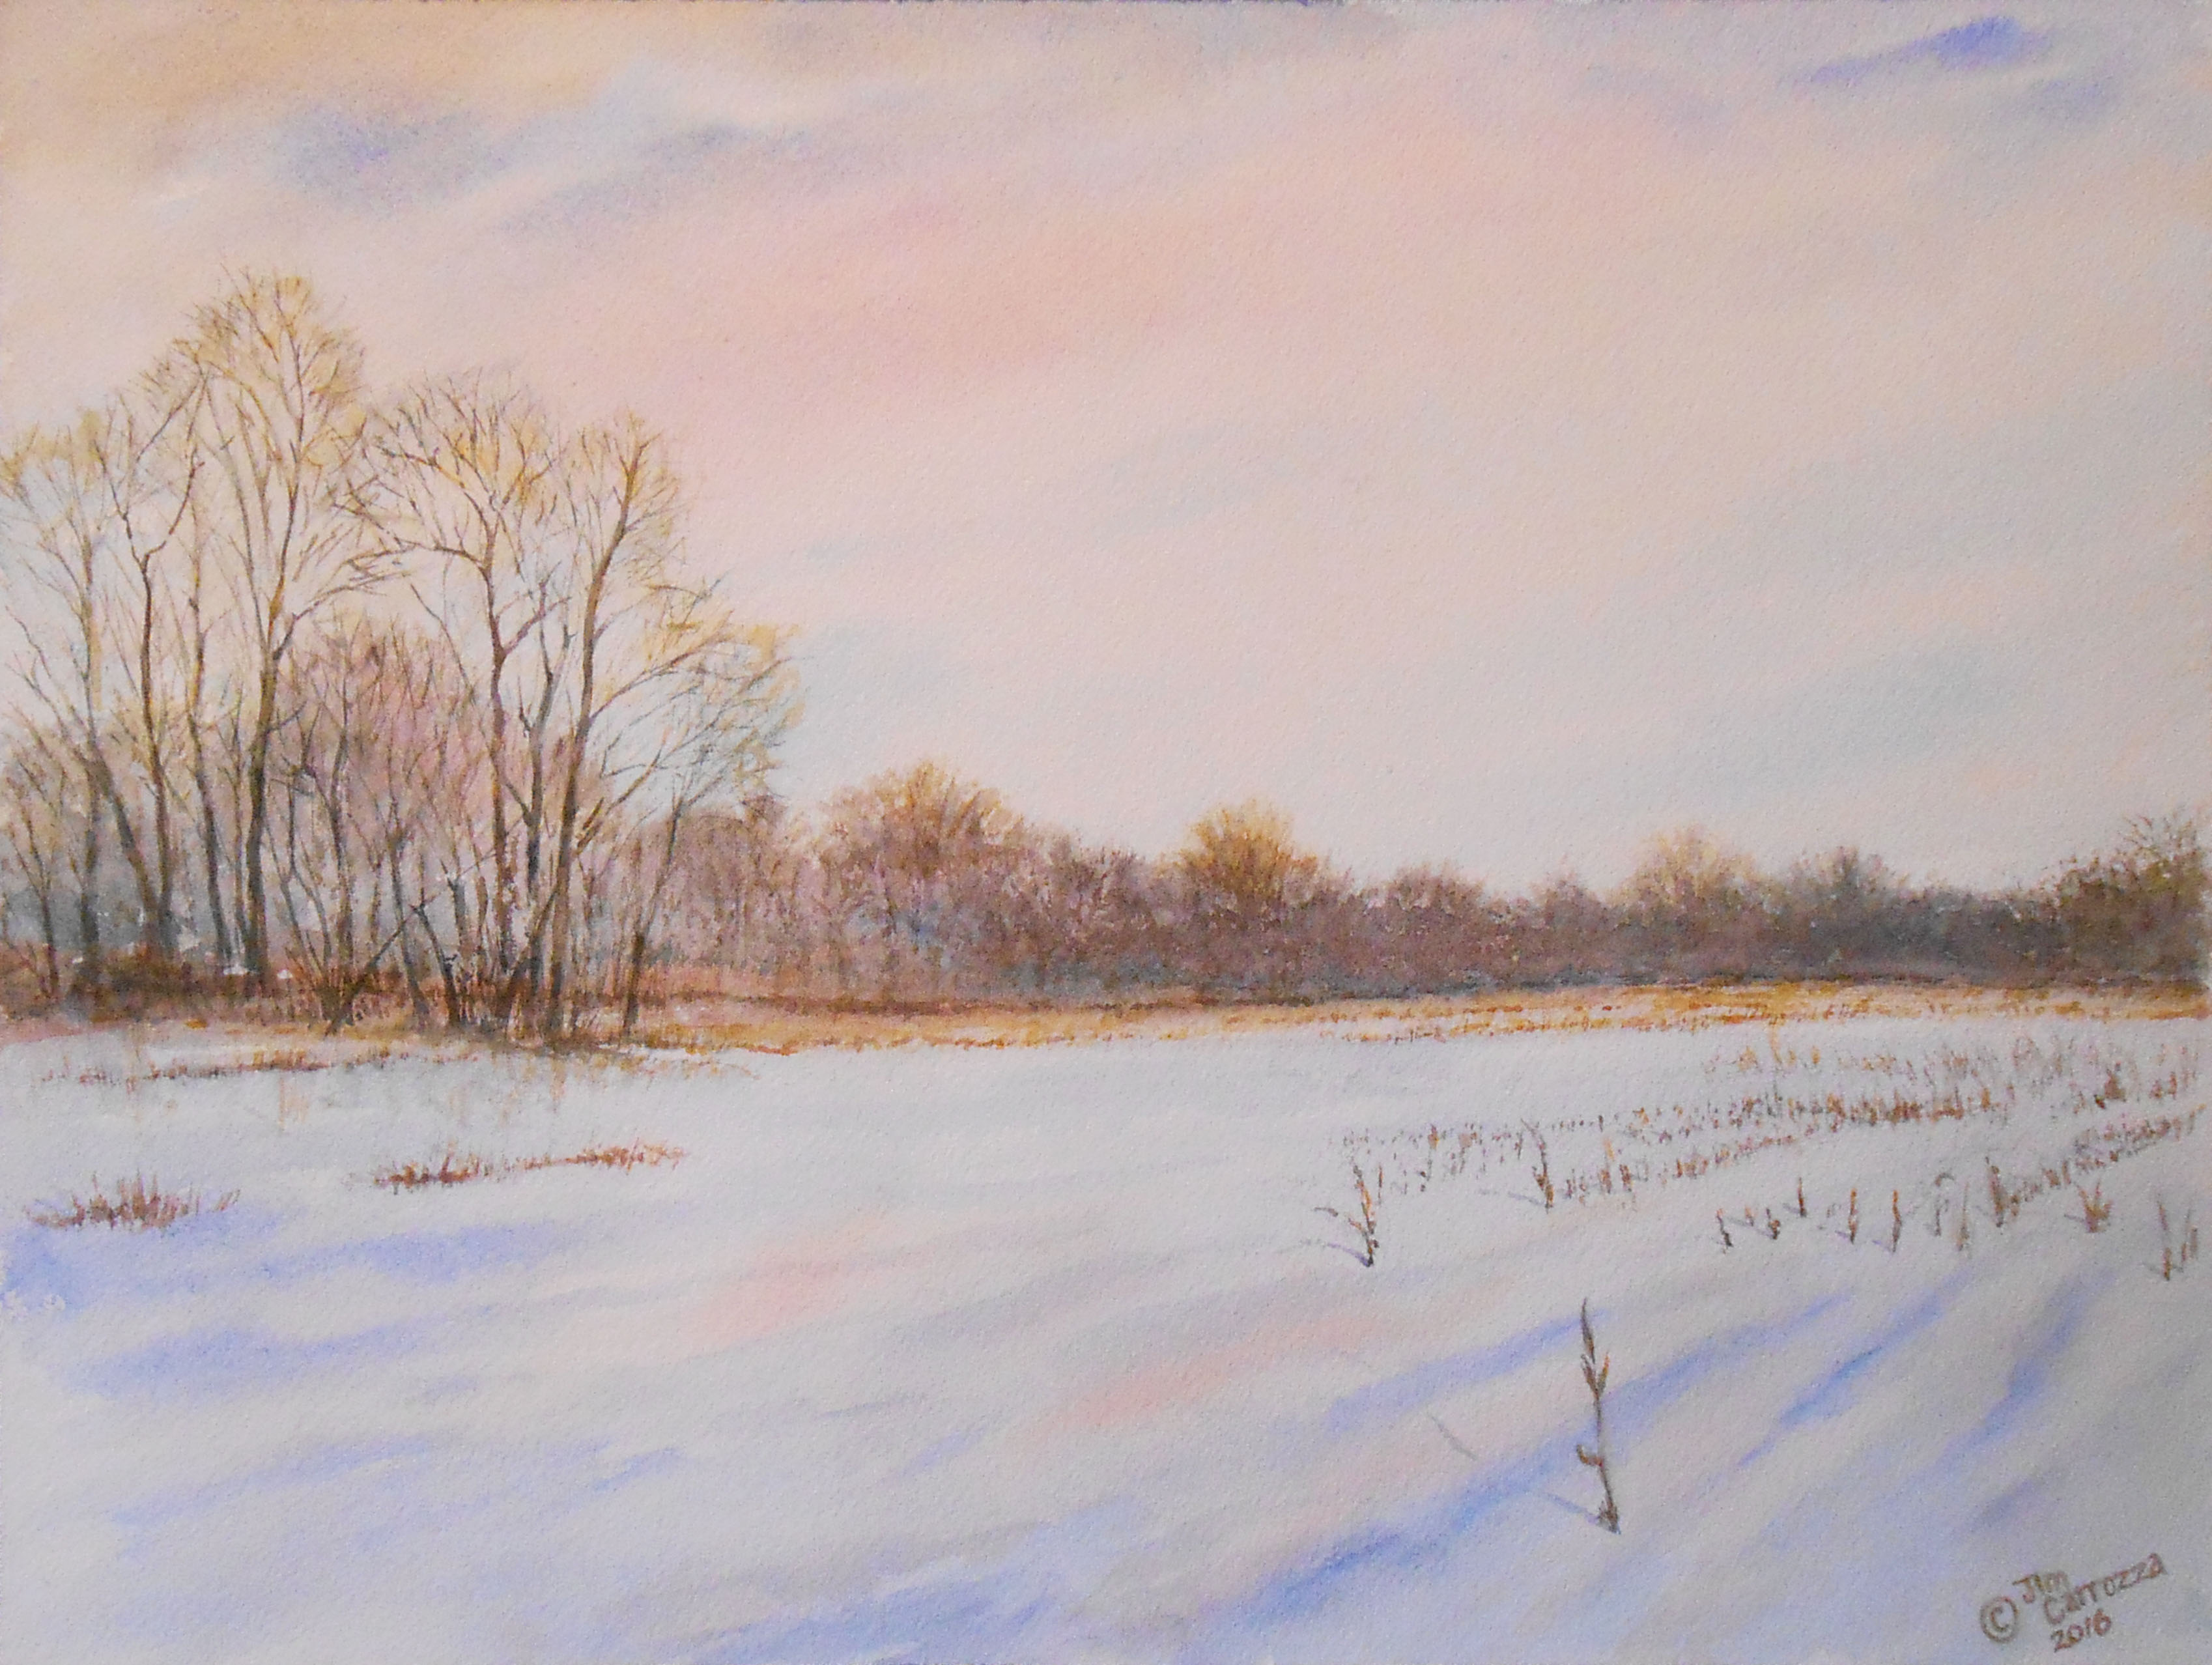 Watercolor, painting, snow, trees